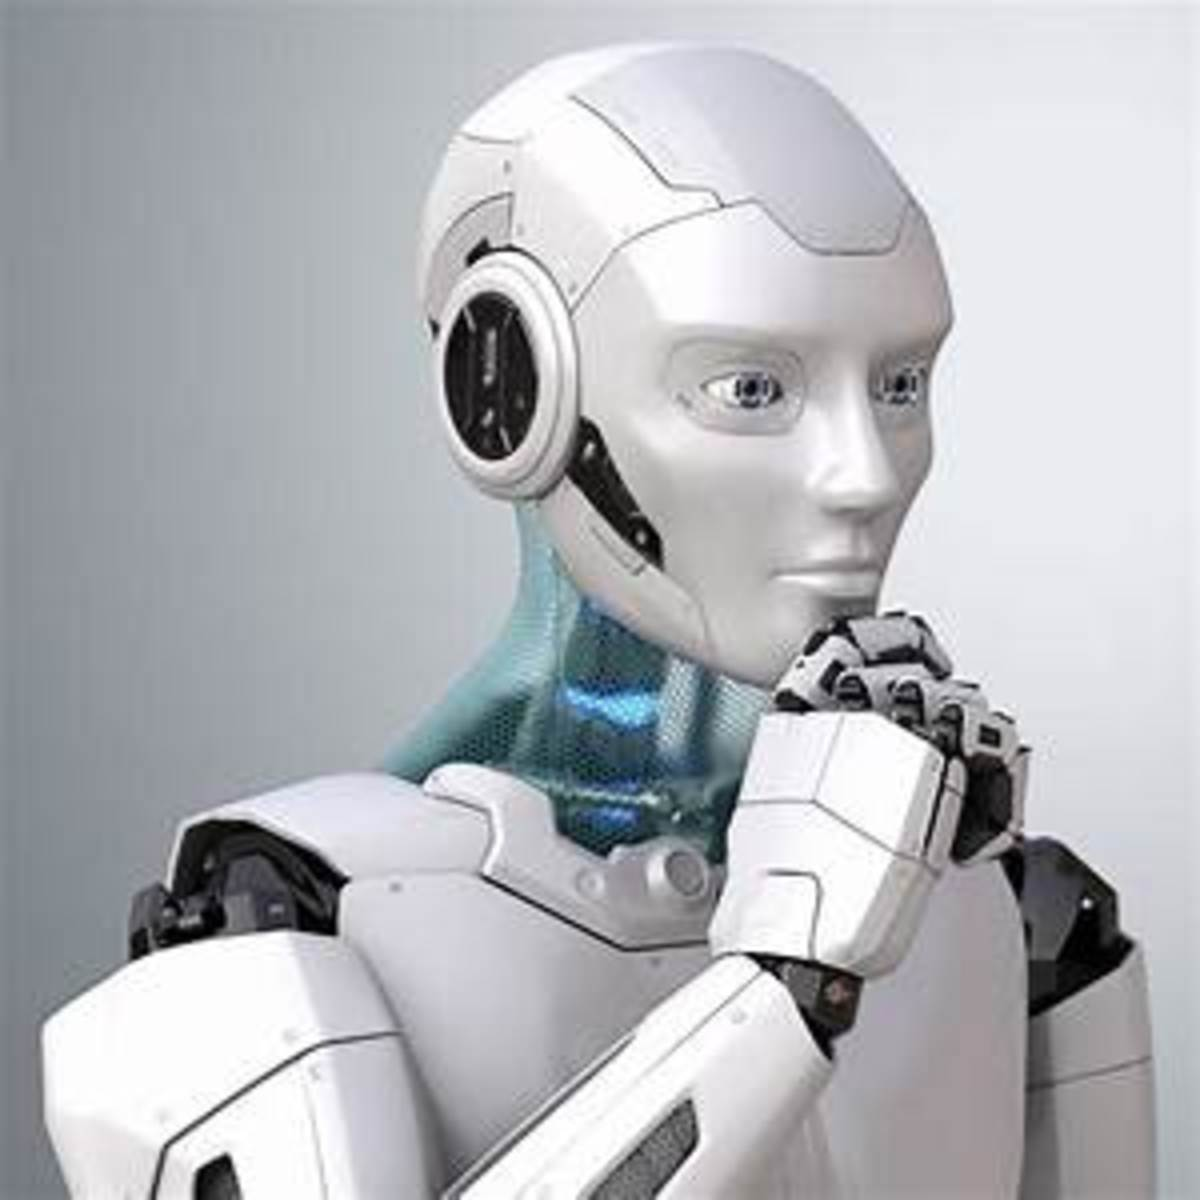 Why Is Everyone Scared of Artificial Intelligence?